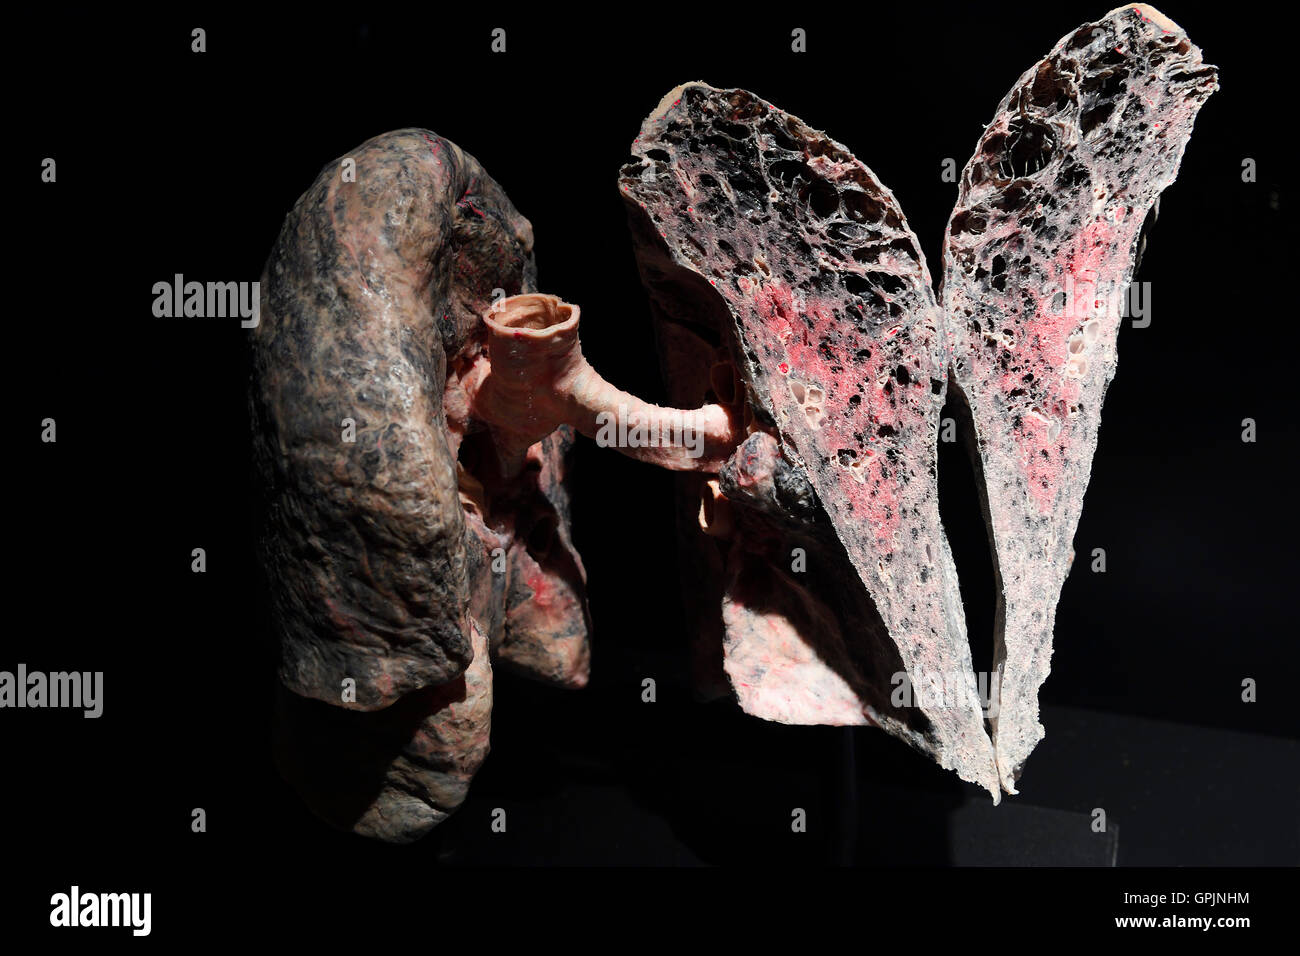 Plastinate, human lung, chronic obstructive pulmonary disease, Body Worlds, Menschen Museum, Berlin, Germany - Stock Image